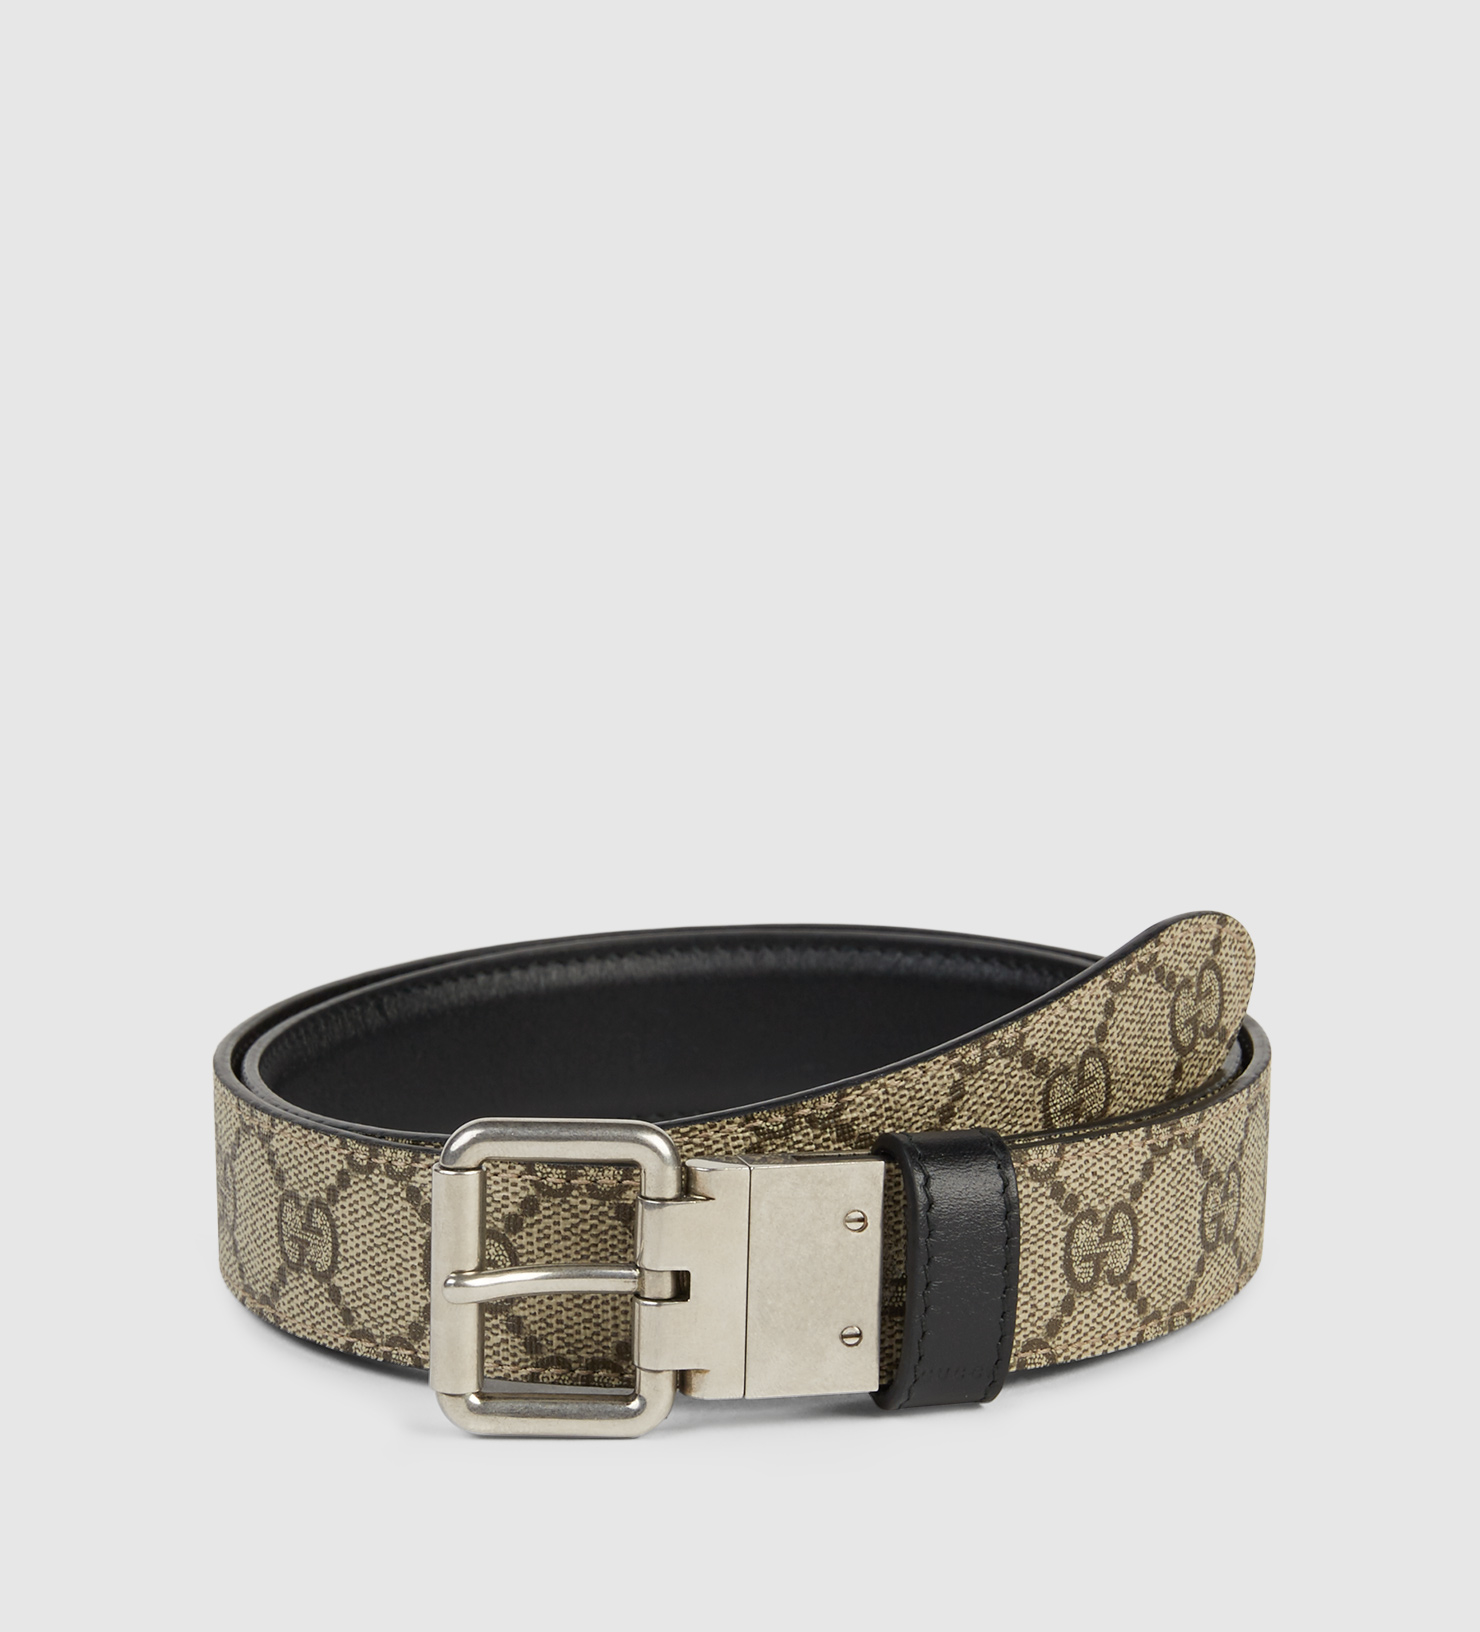 211843f4370 Gucci Reversible Leather And Gg Supreme Belt in Black for Men - Lyst